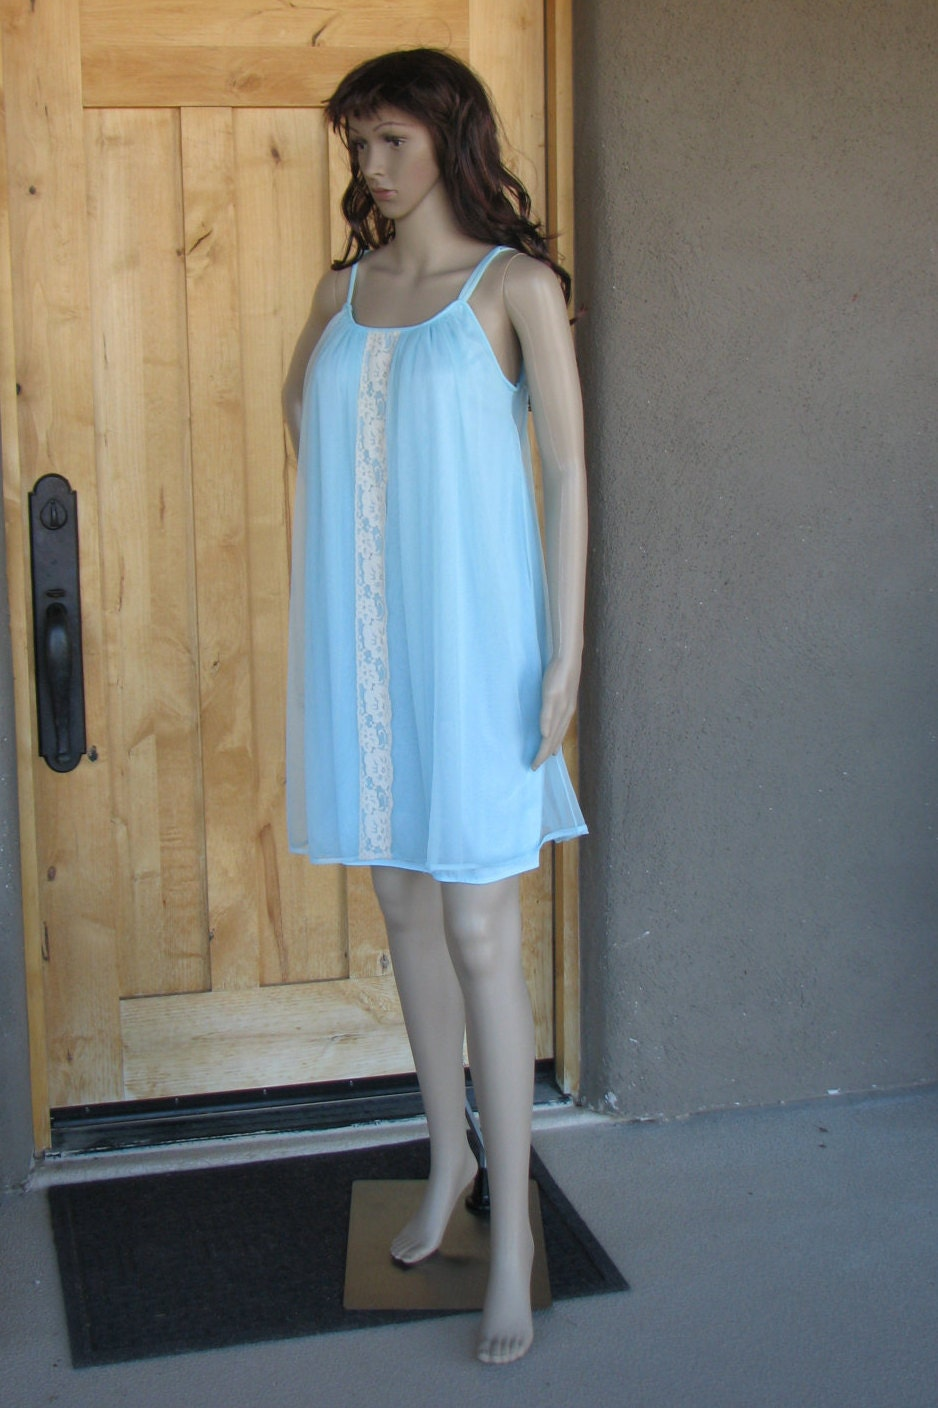 Vintage nightgowns for sale online. Recapture the glamour of yesterday with the greatest selection of vintage nightgowns on the web. Visit the site today for vintage nightgowns in .